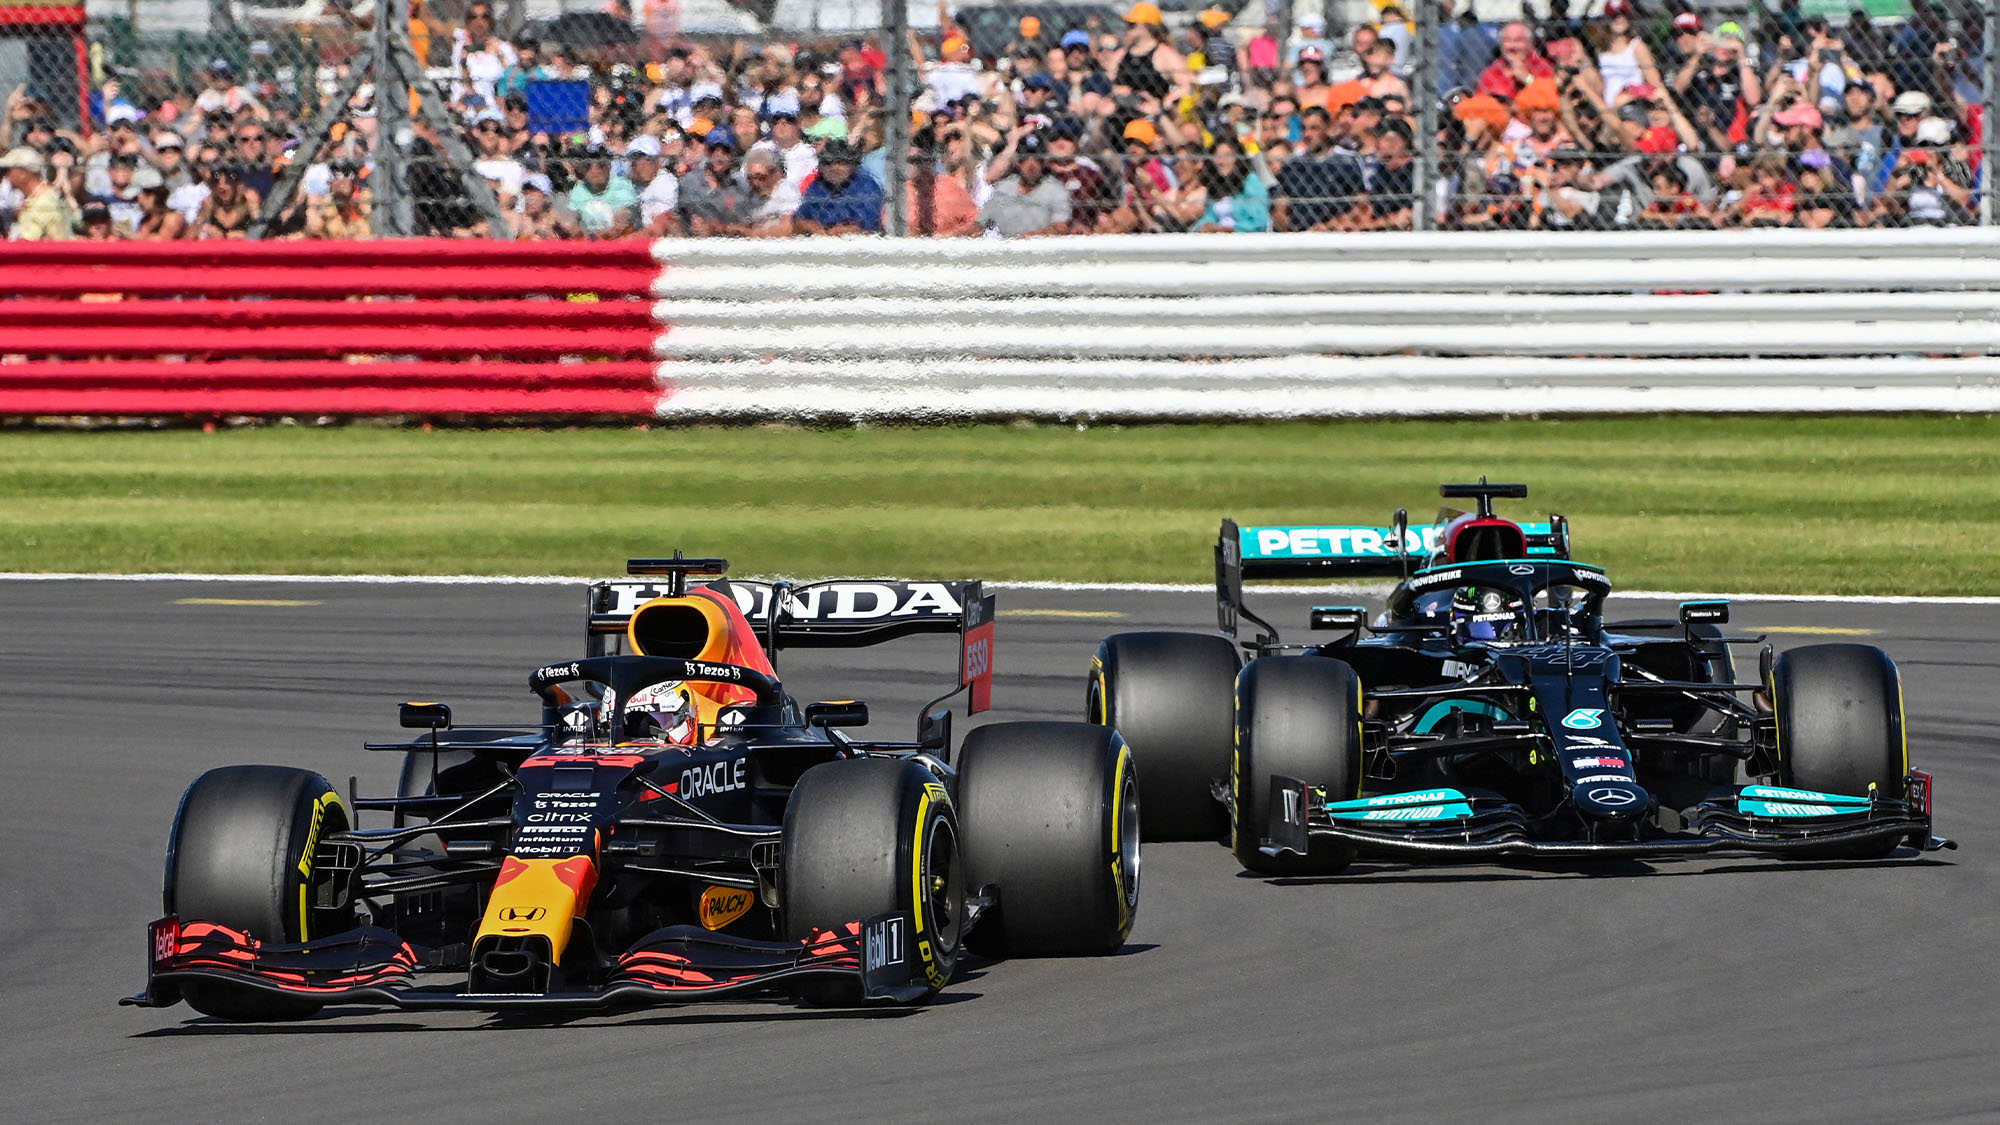 33 VERSTAPPEN Max (nld), Red Bull Racing Honda RB16B, action 44 HAMILTON Lewis (gbr), Mercedes AMG F1 GP W12 E Performance, action during the Sprint Race of Formula 1 Pirelli British Grand Prix 2021, 10th round of the 2021 FIA Formula One World Championship from July 16 to 18, 2021 on the Silverstone Circuit, in Silverstone, United Kingdom - Photo DPPI